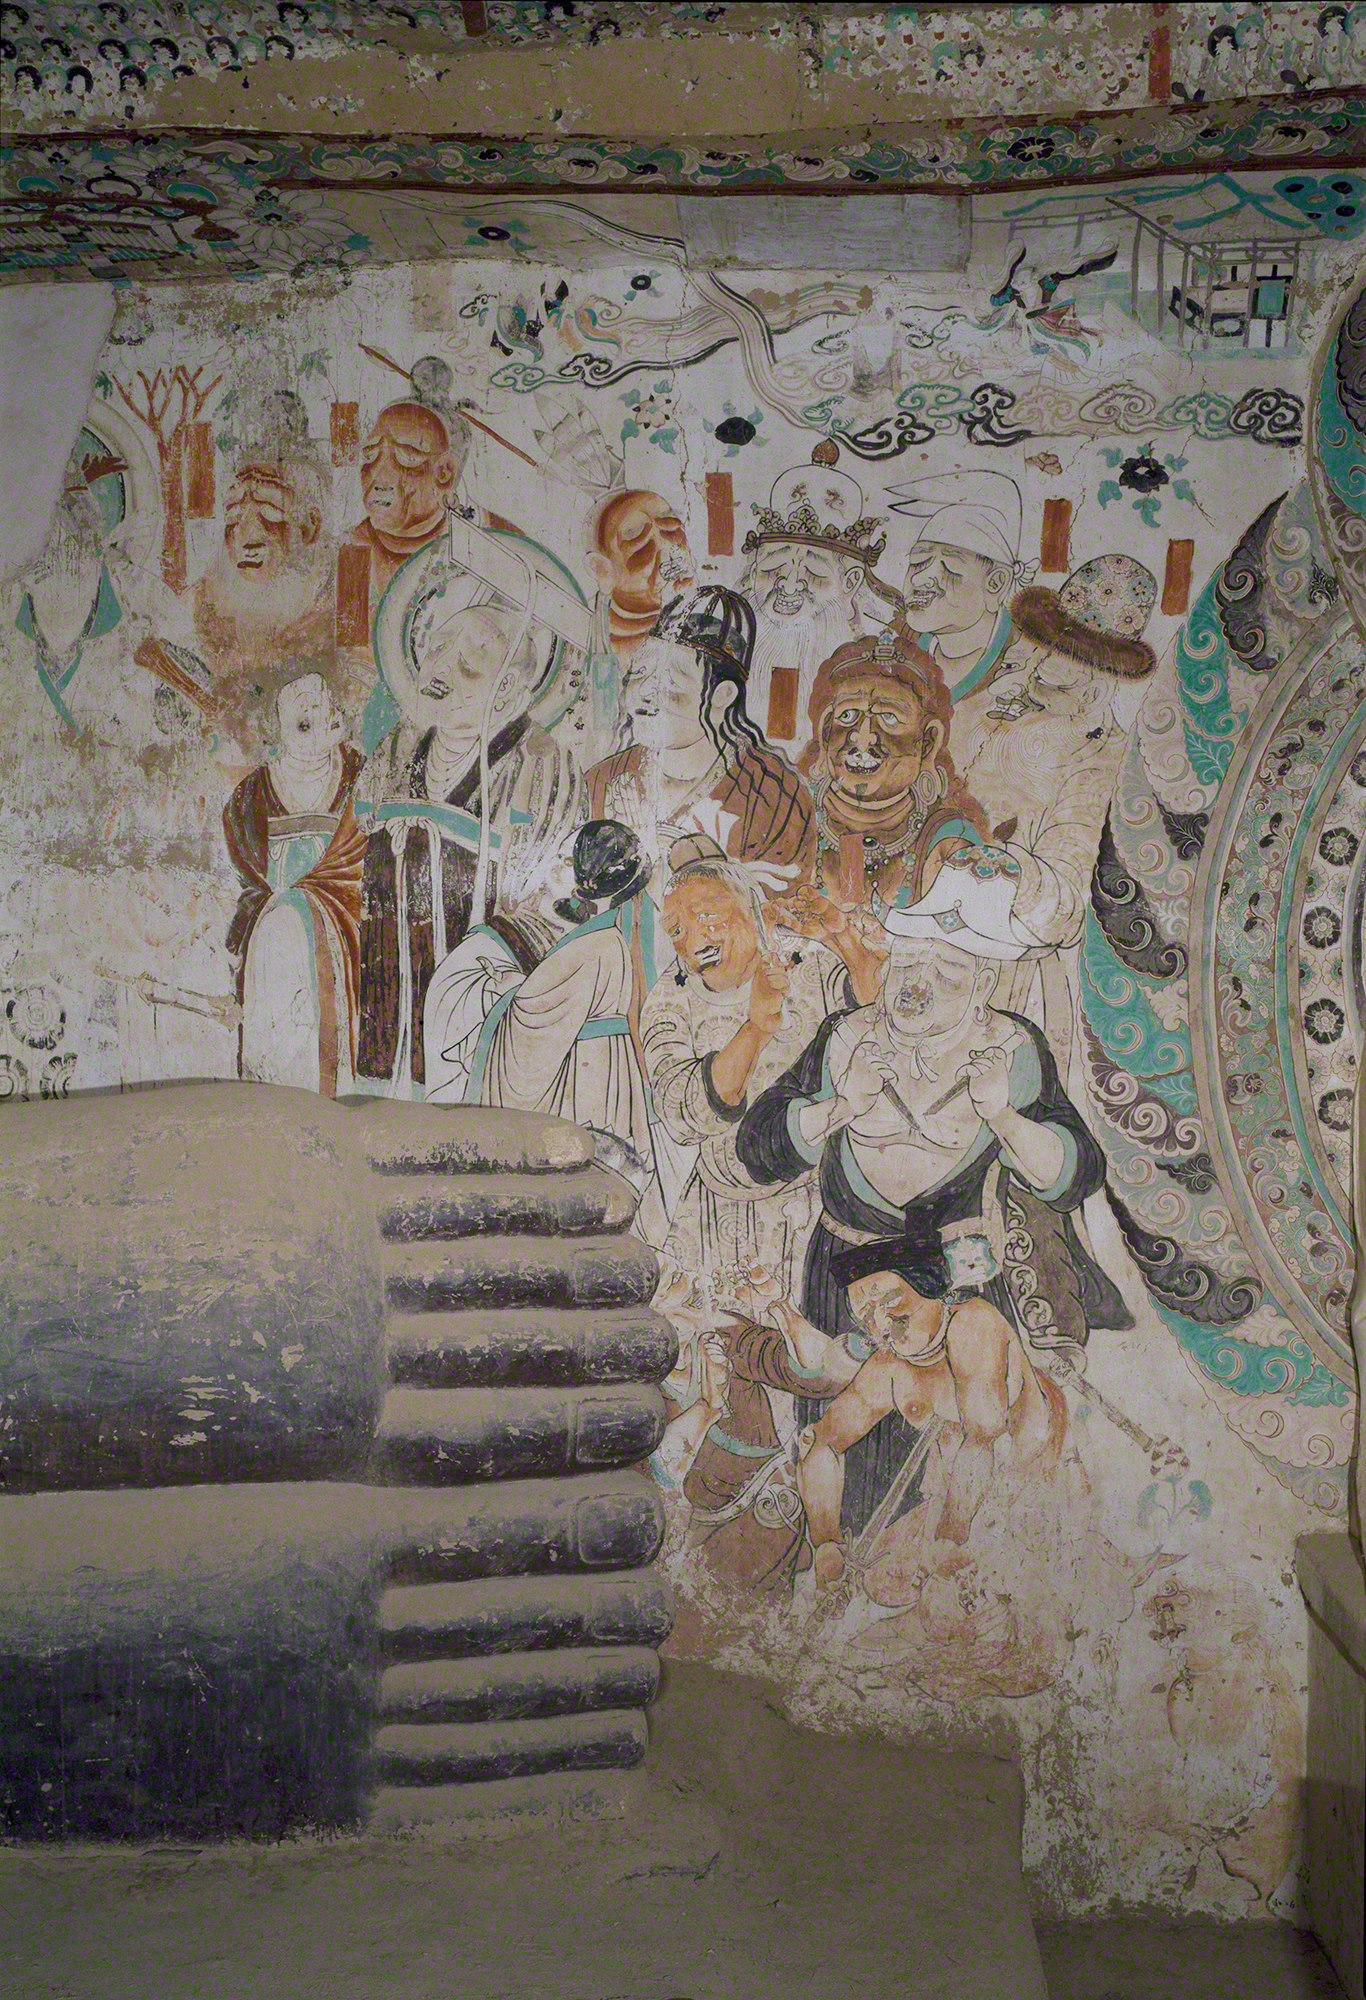 Mural at the foot of the reclining Buddha in Cave 158, 781-848 CE, Dunhuang. Photo by Wu Jian. Image courtesy of the Dunhuang Academy.